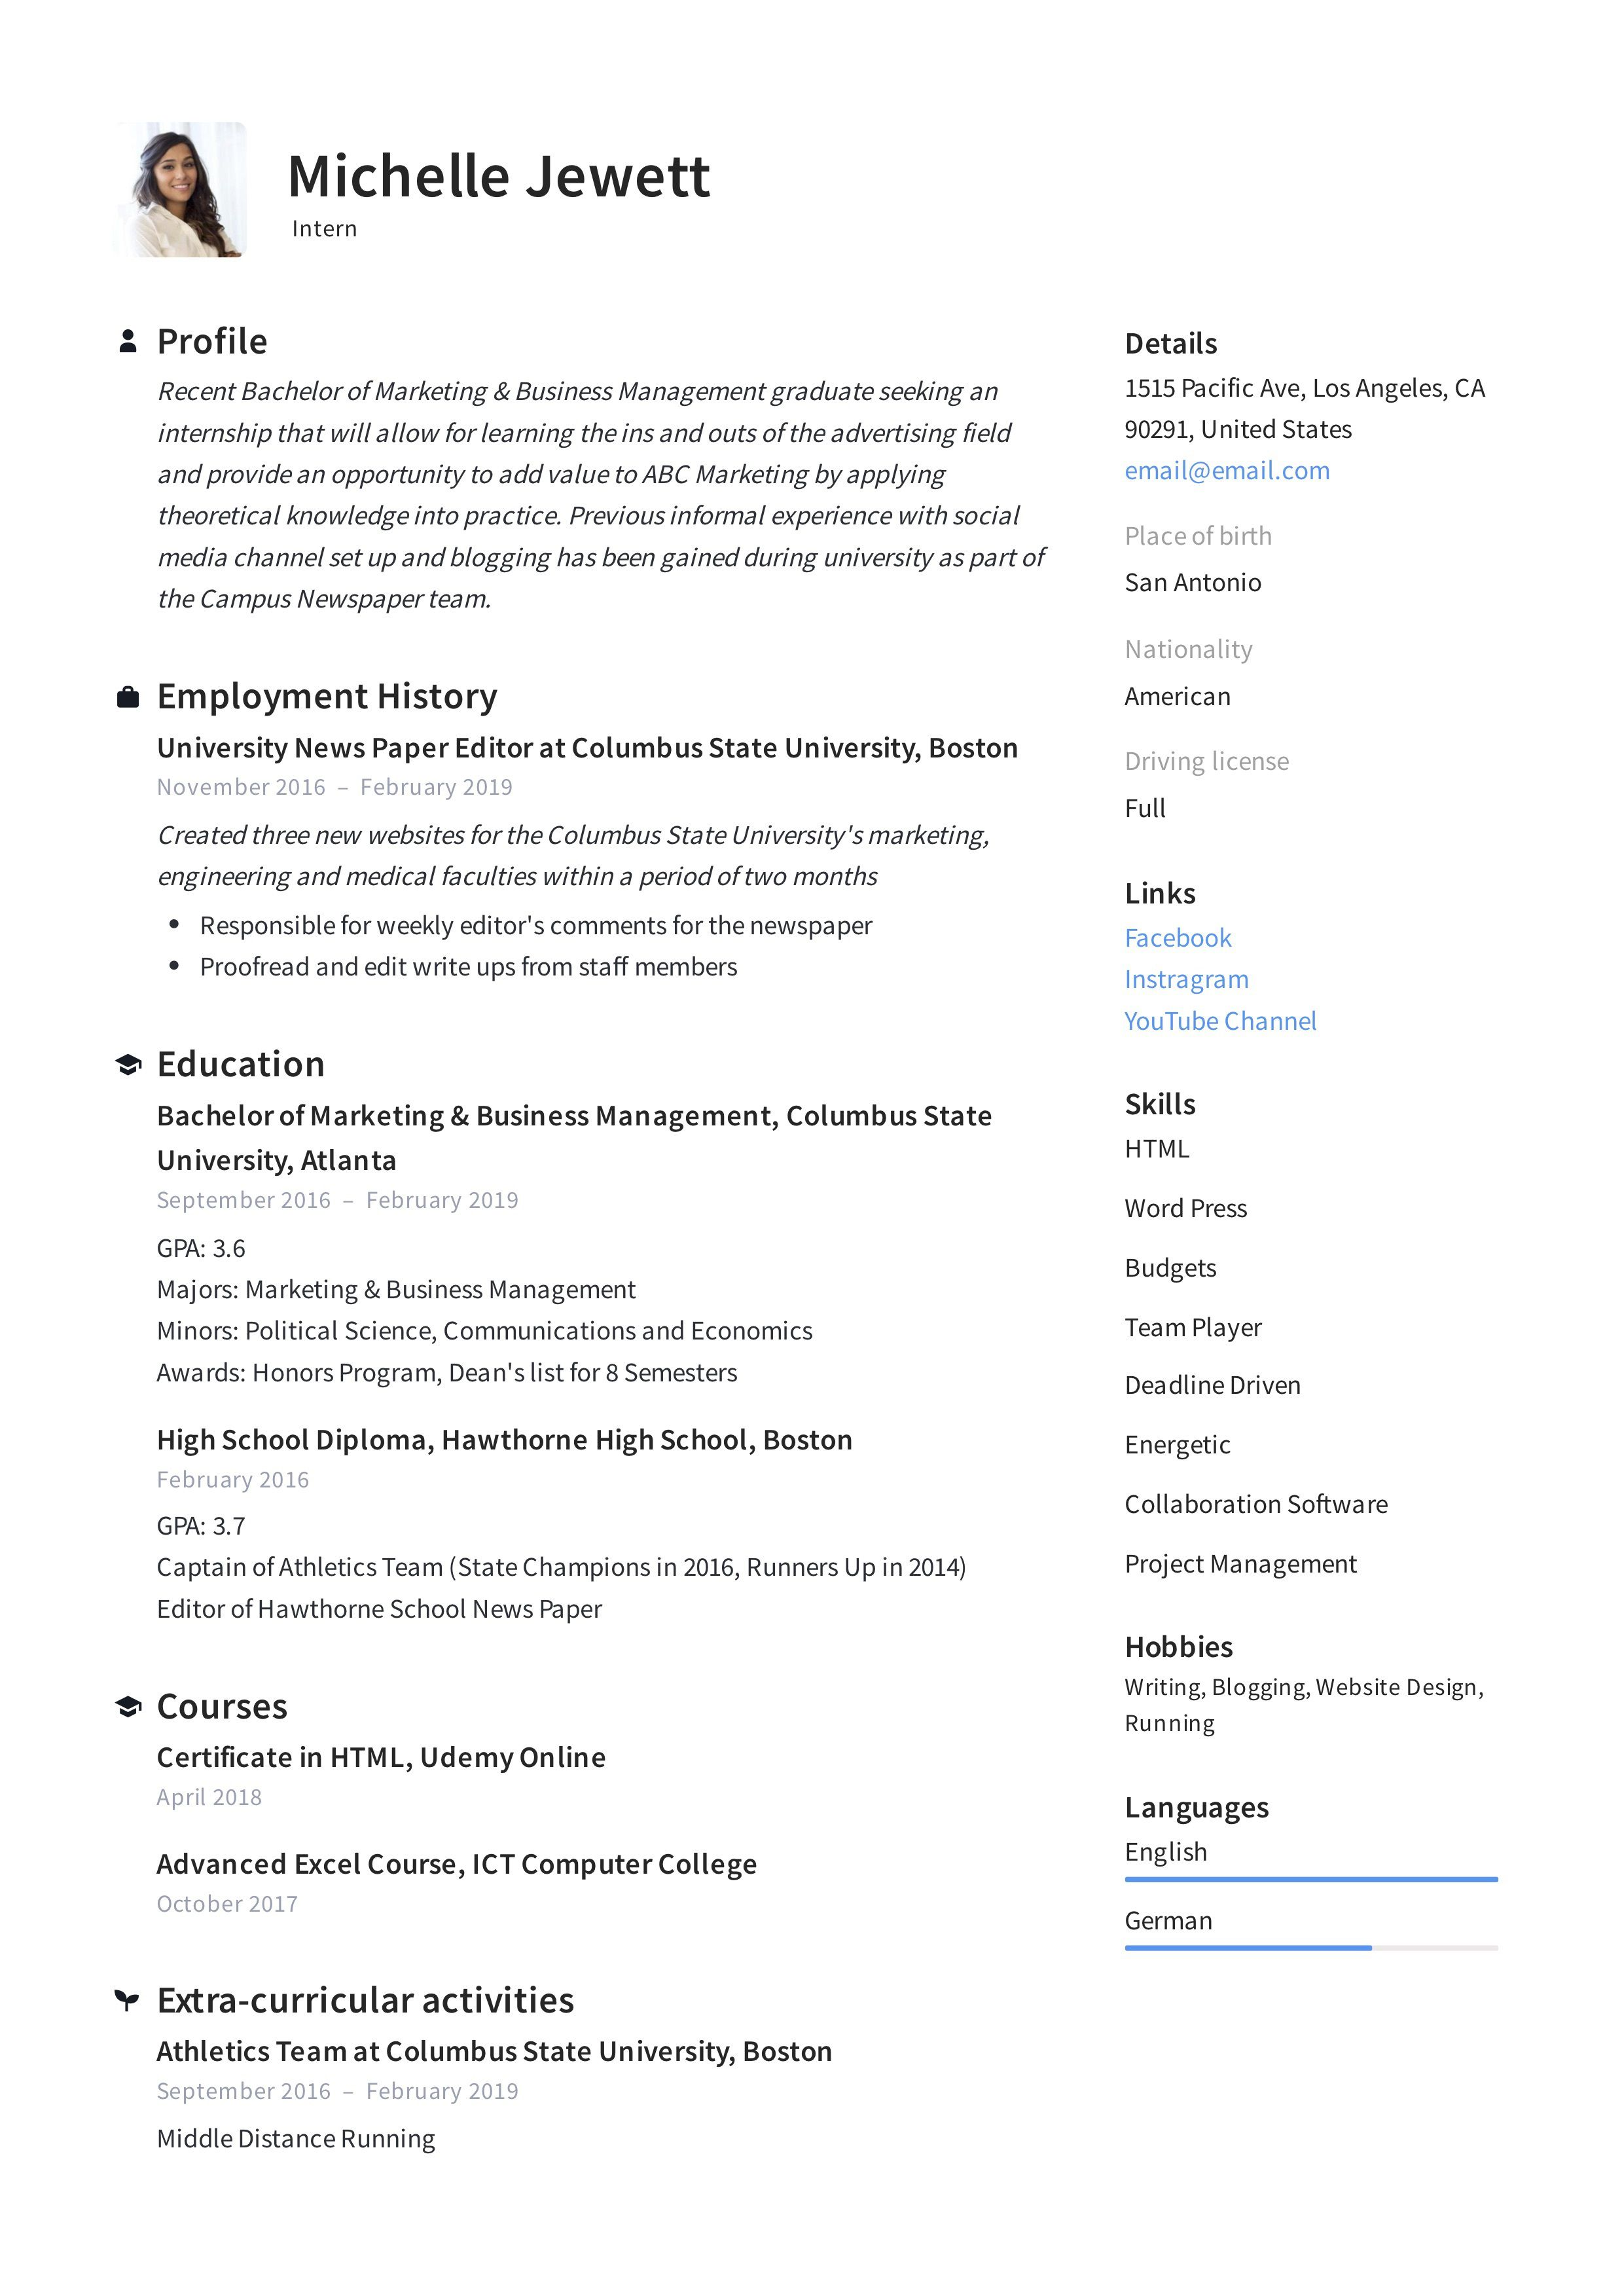 008 Unique Resume Template For Intern Image  Interns Internship In Engineering Law ExampleFull